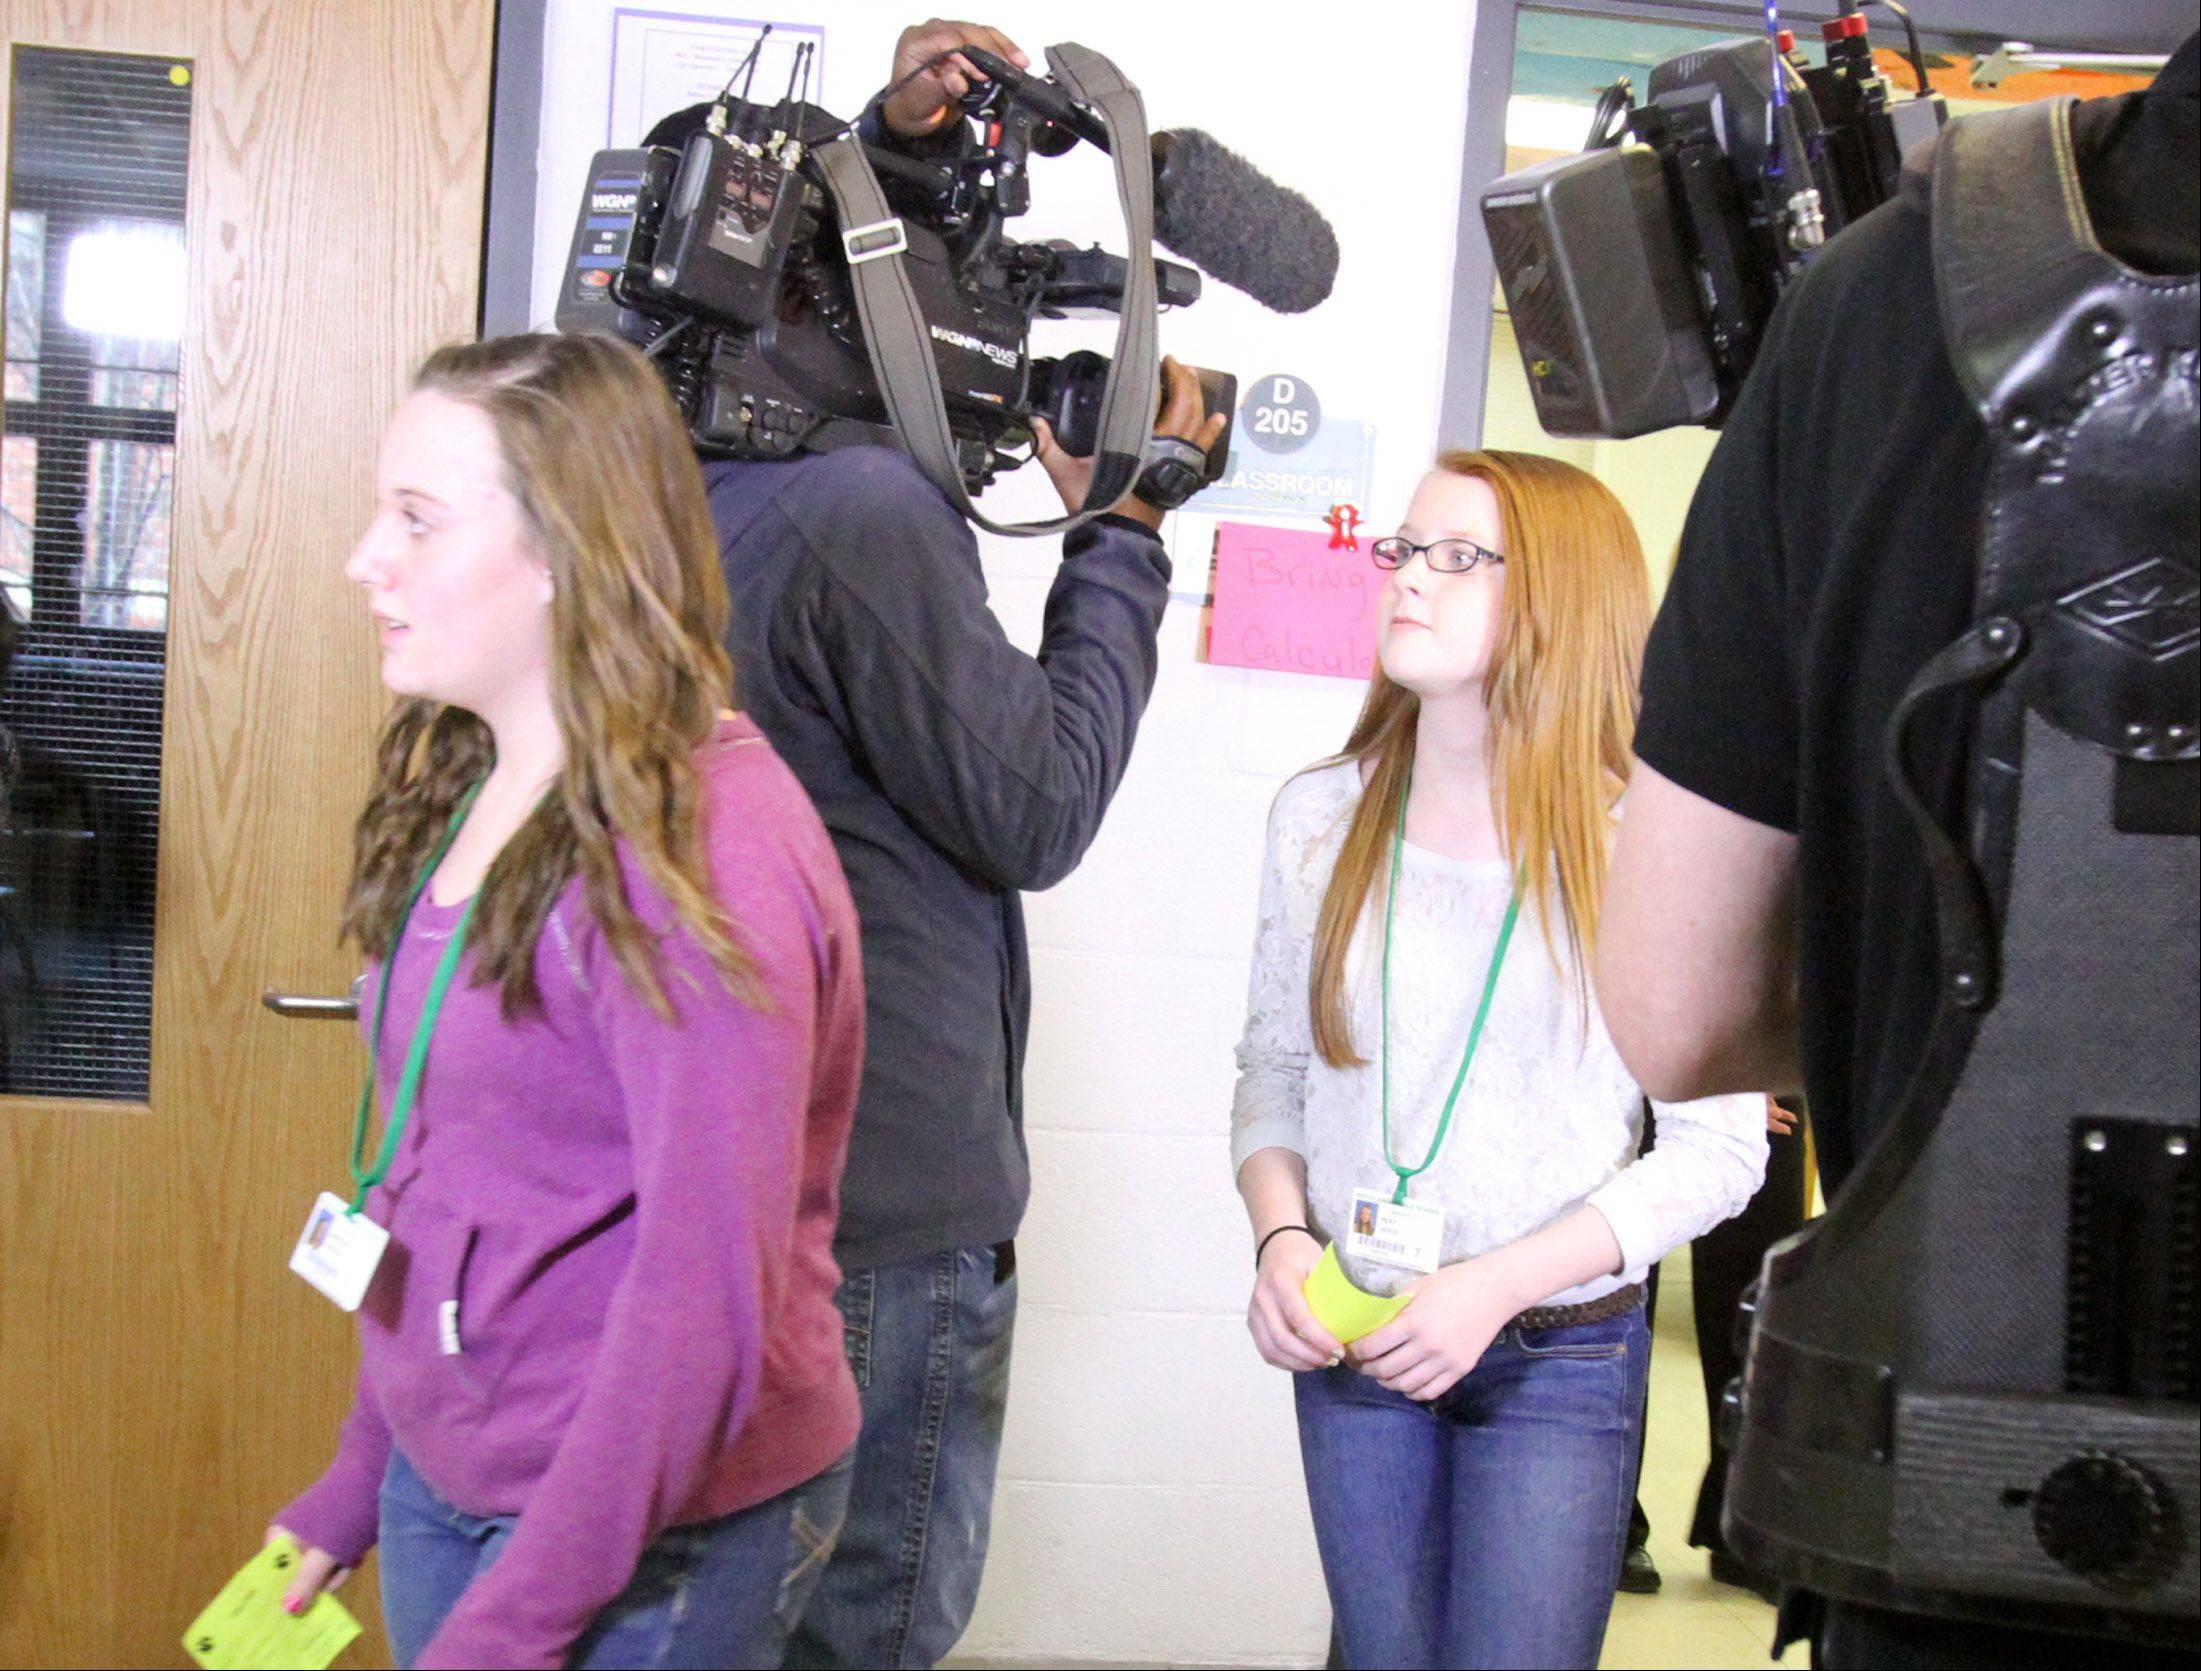 Morgan Niesen, left, and Riley Doyle, both seventh-graders at Woodland Middle School, play their roles of rushing to a hard-lockdown area in a safety video shot Friday at the school in Gurnee.